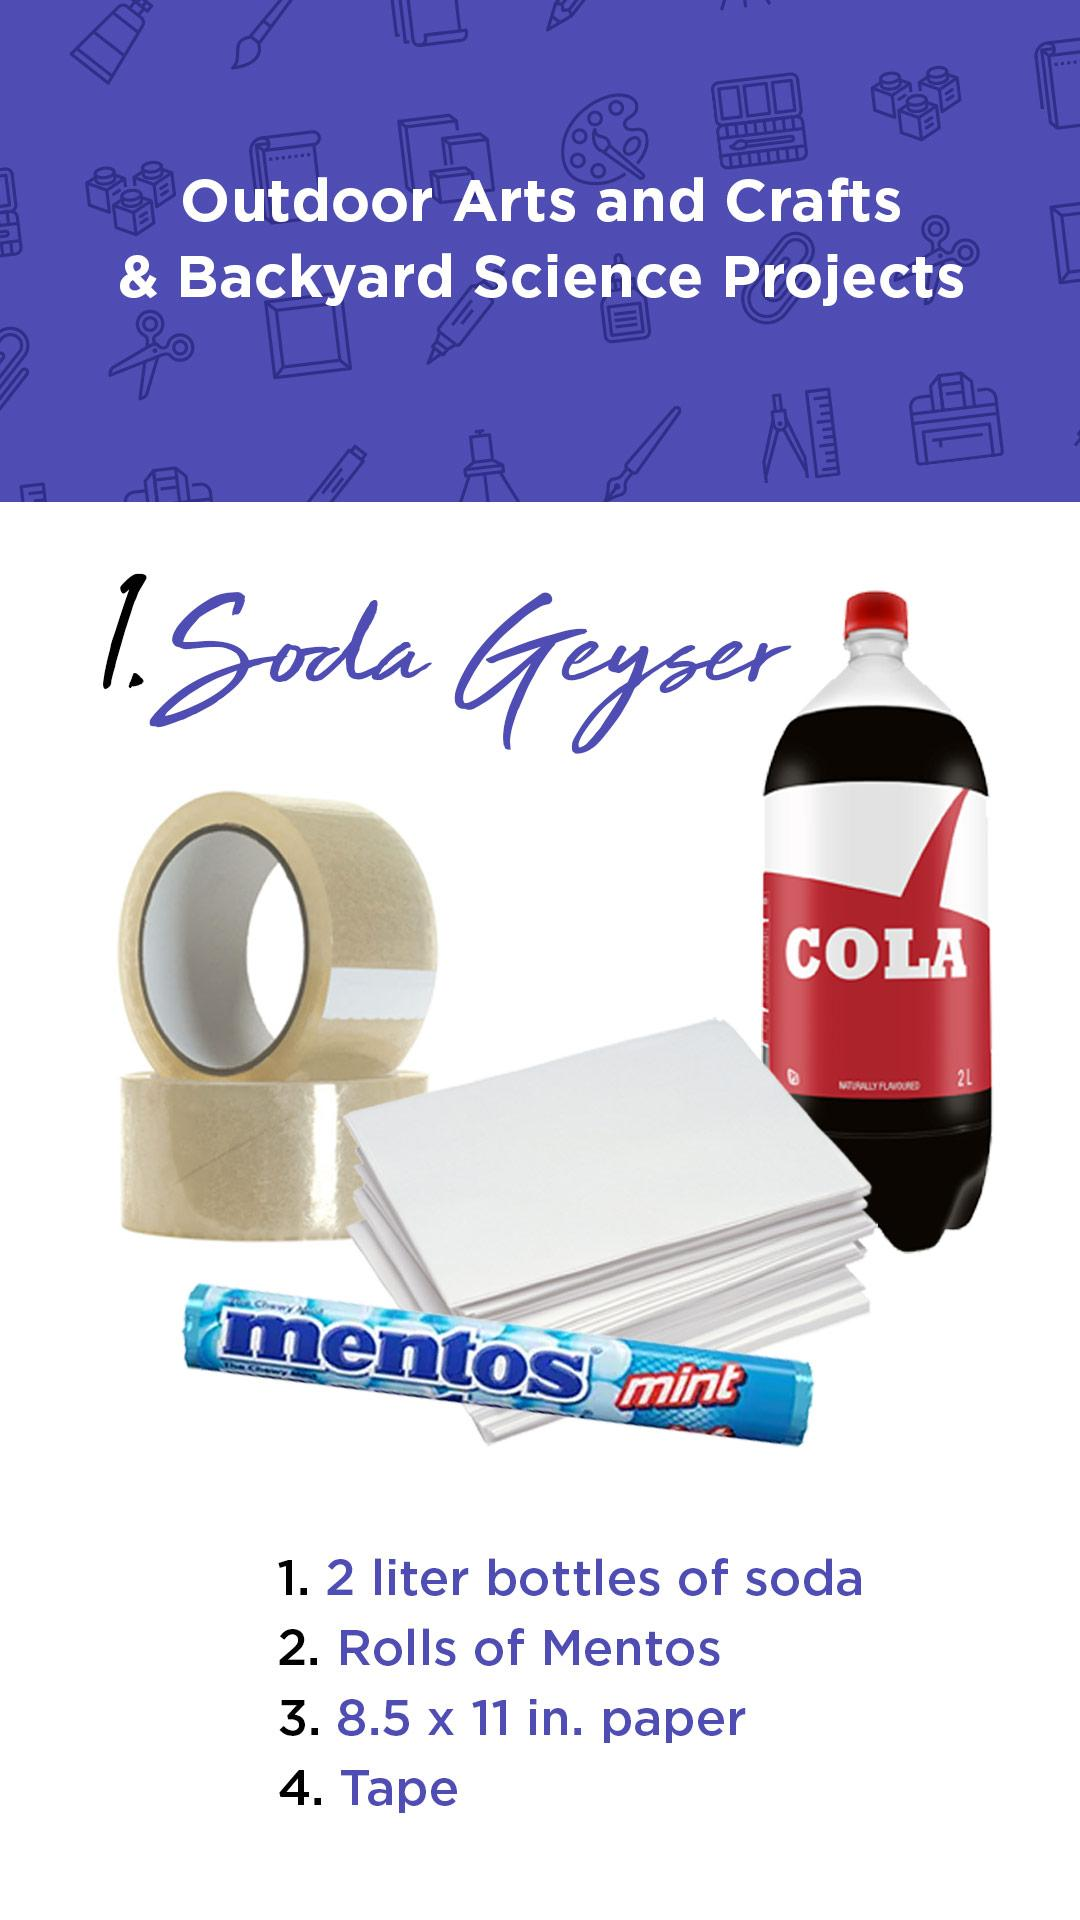 How to Make a Soda Geyser